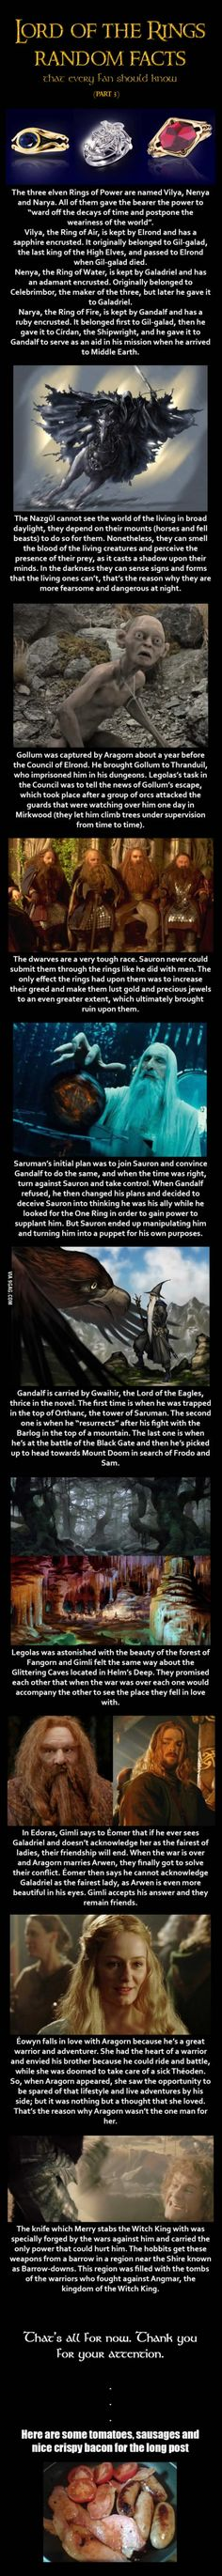 Here are some Lord of the Rings random facts (Part 3)